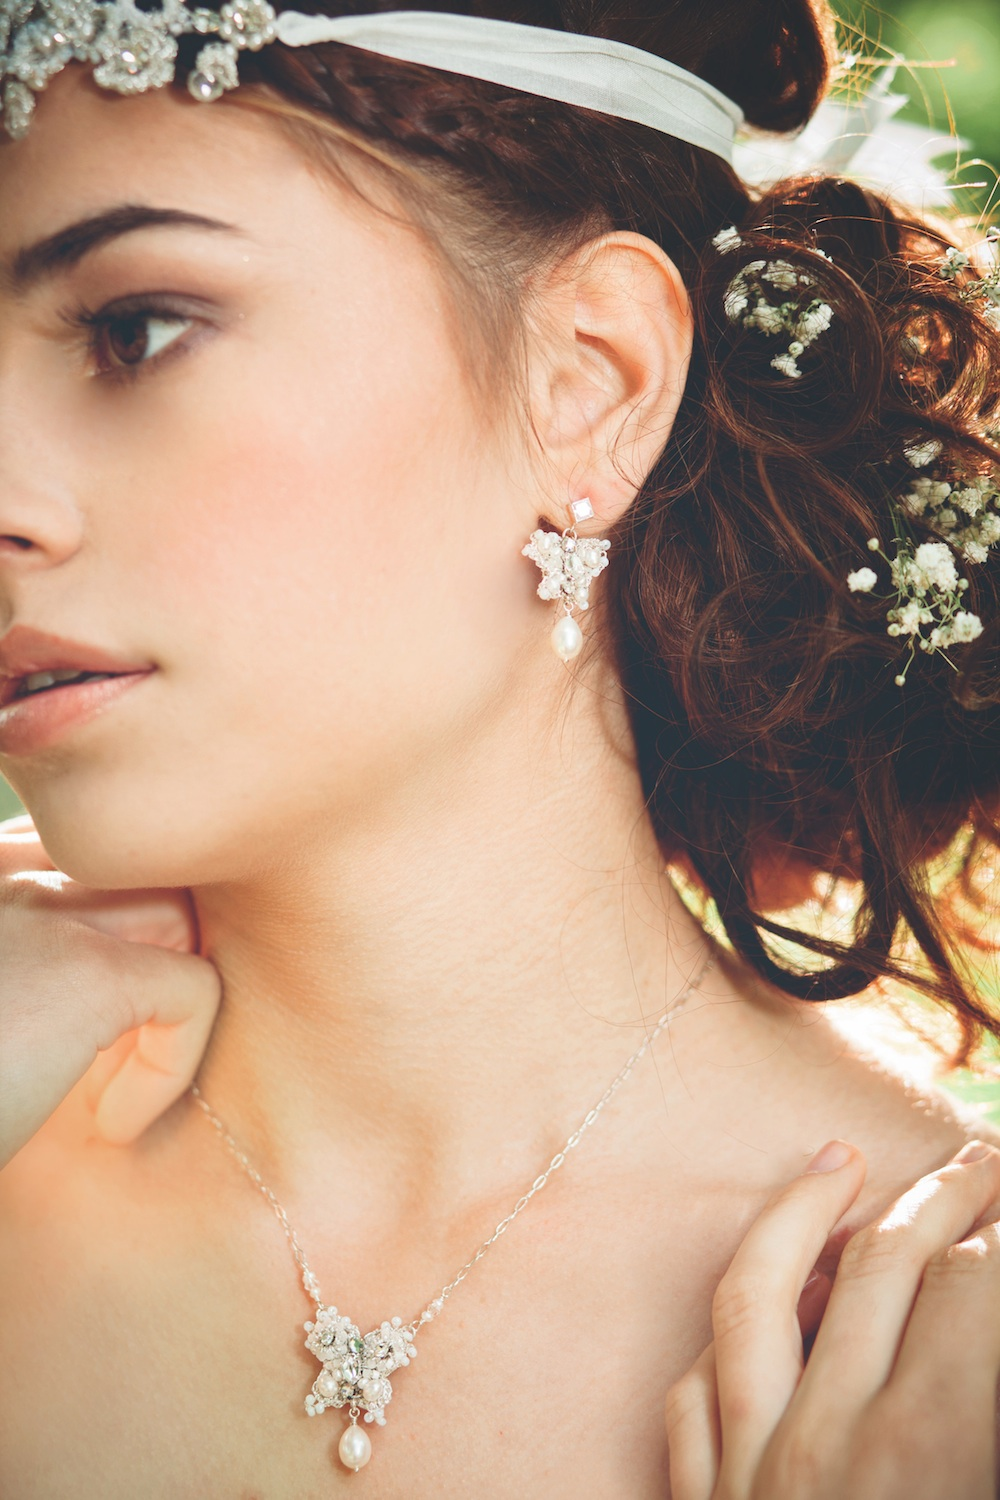 Dia Earrings & Necklace, Eirene Headband